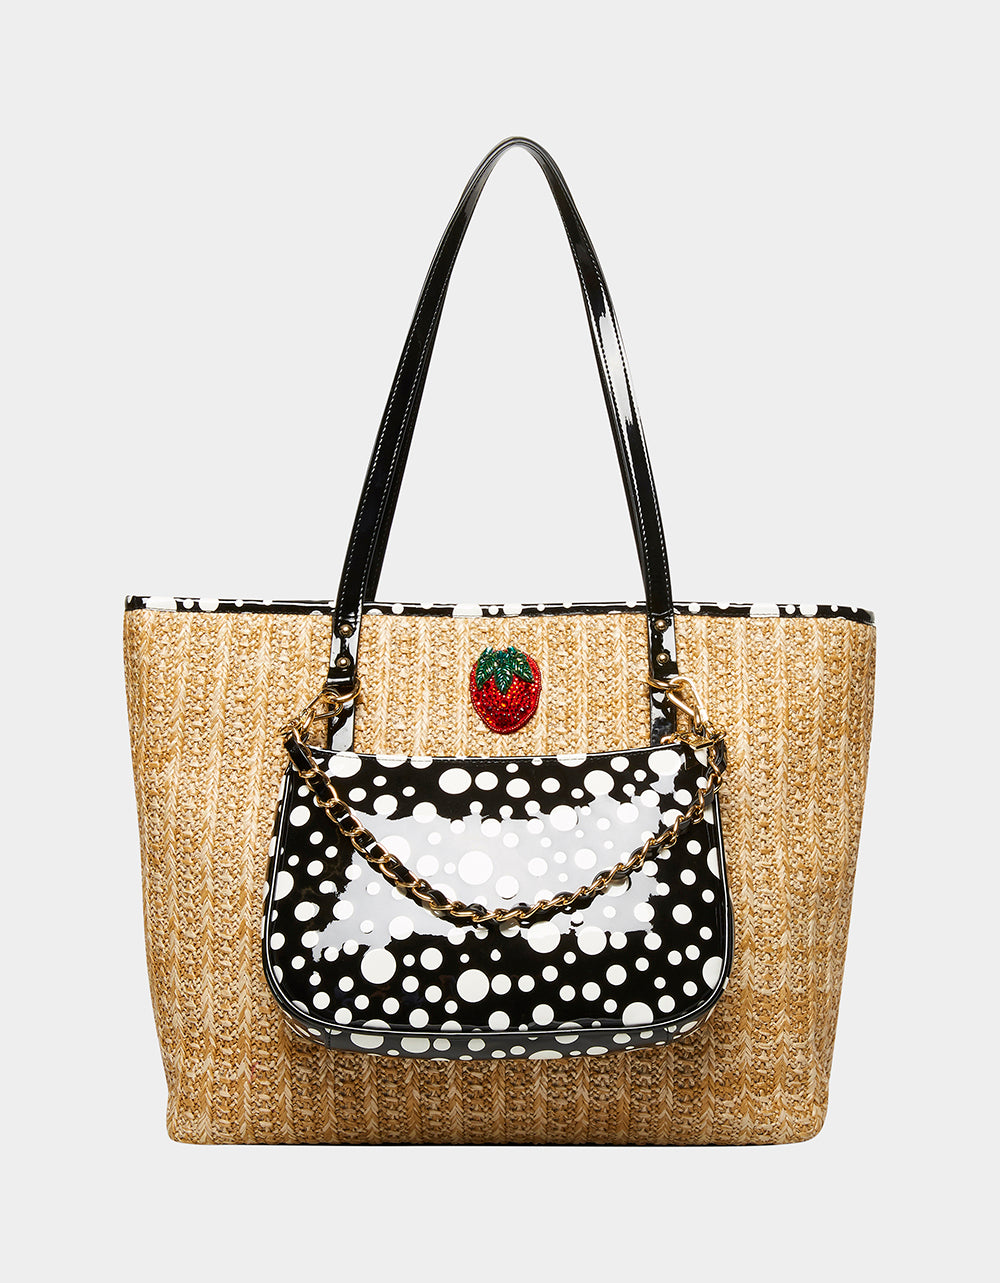 STRAWBERRY FIELDS STRAW TOTE COMBO NATURAL